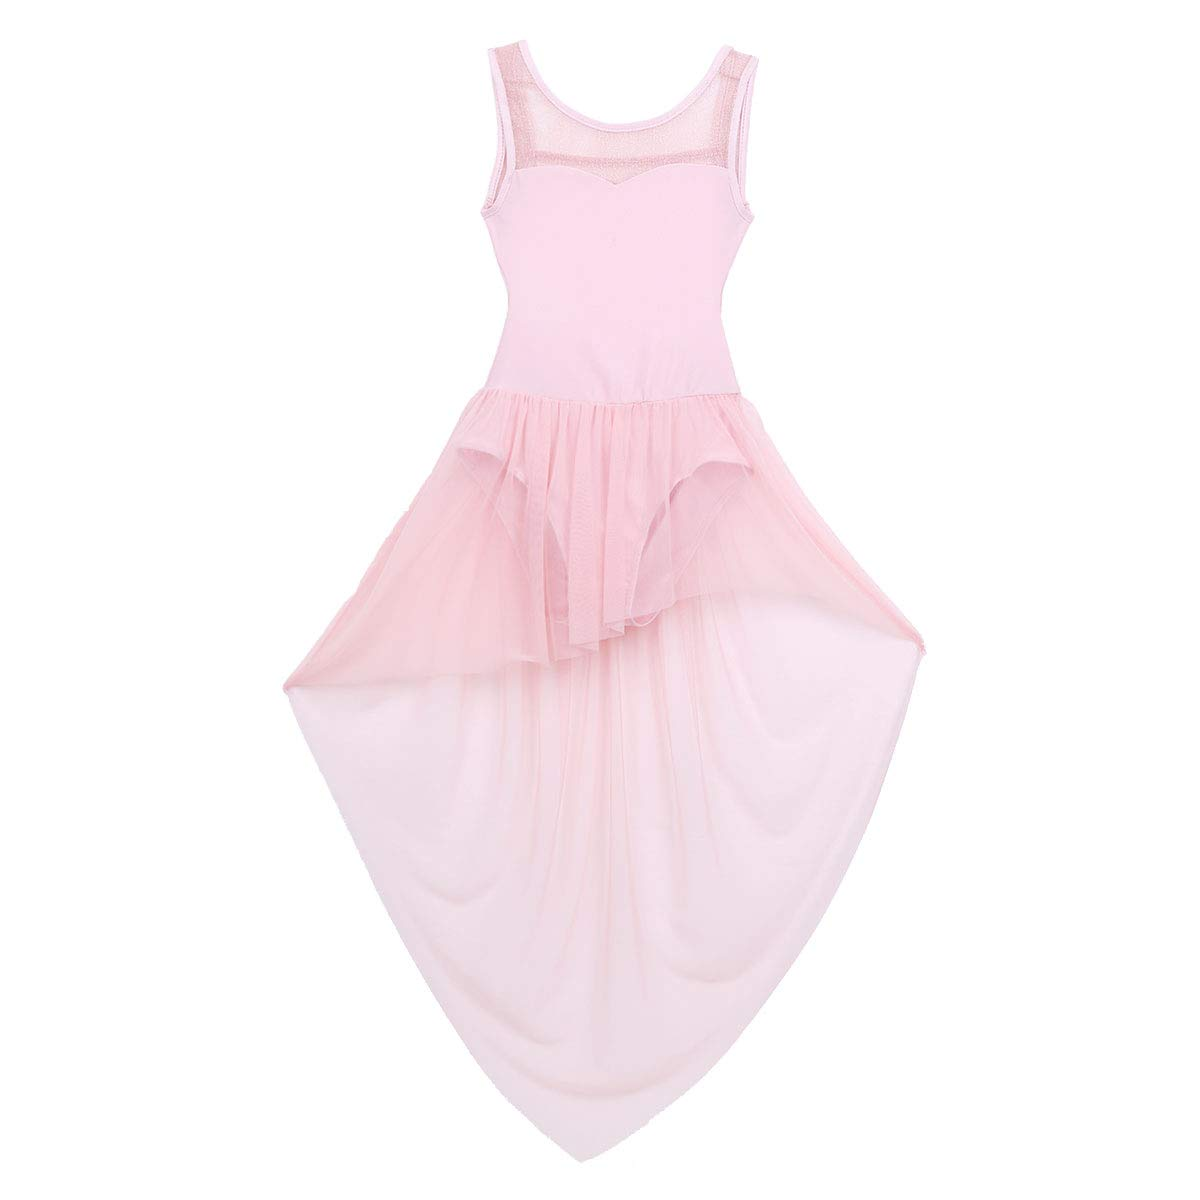 Freebily Justaucorps Gymnastique Ballet Enfant Fille Robe Latine Danse Contemporaine Asym/étrique Robe Danse Salon Rumba Zumba Salsa Fille Robe Bal F/ête Dancewear 4-14 Ans